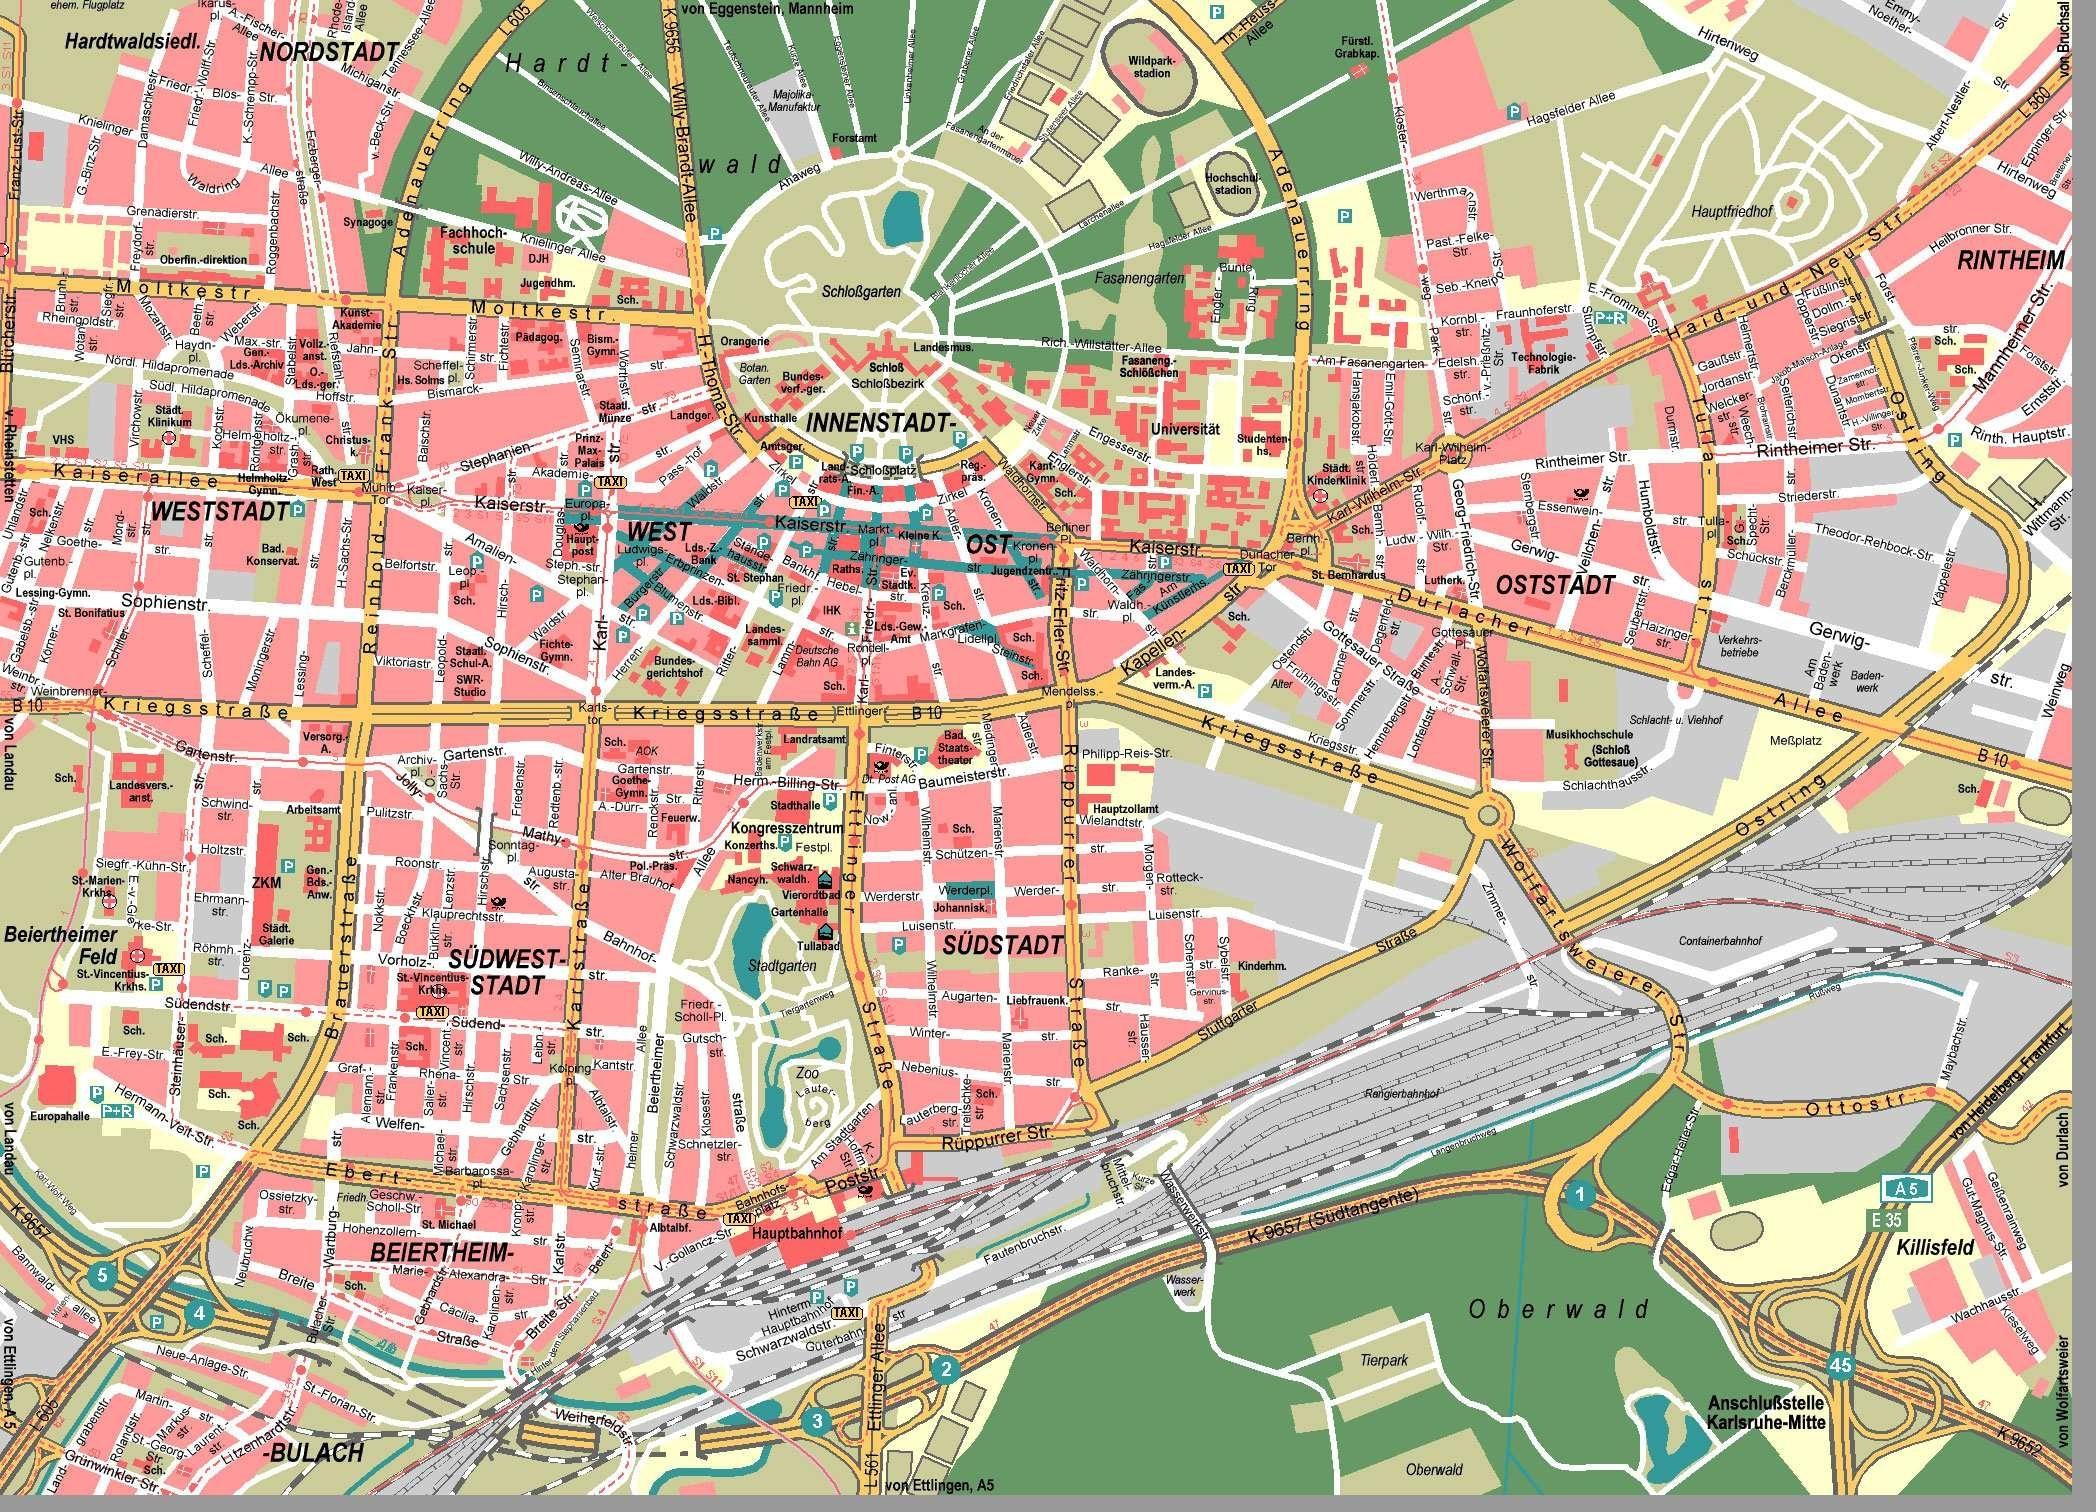 Large Karlsruhe Maps For Free Download And Print | High with regard to Stuttgart Germany Map Google